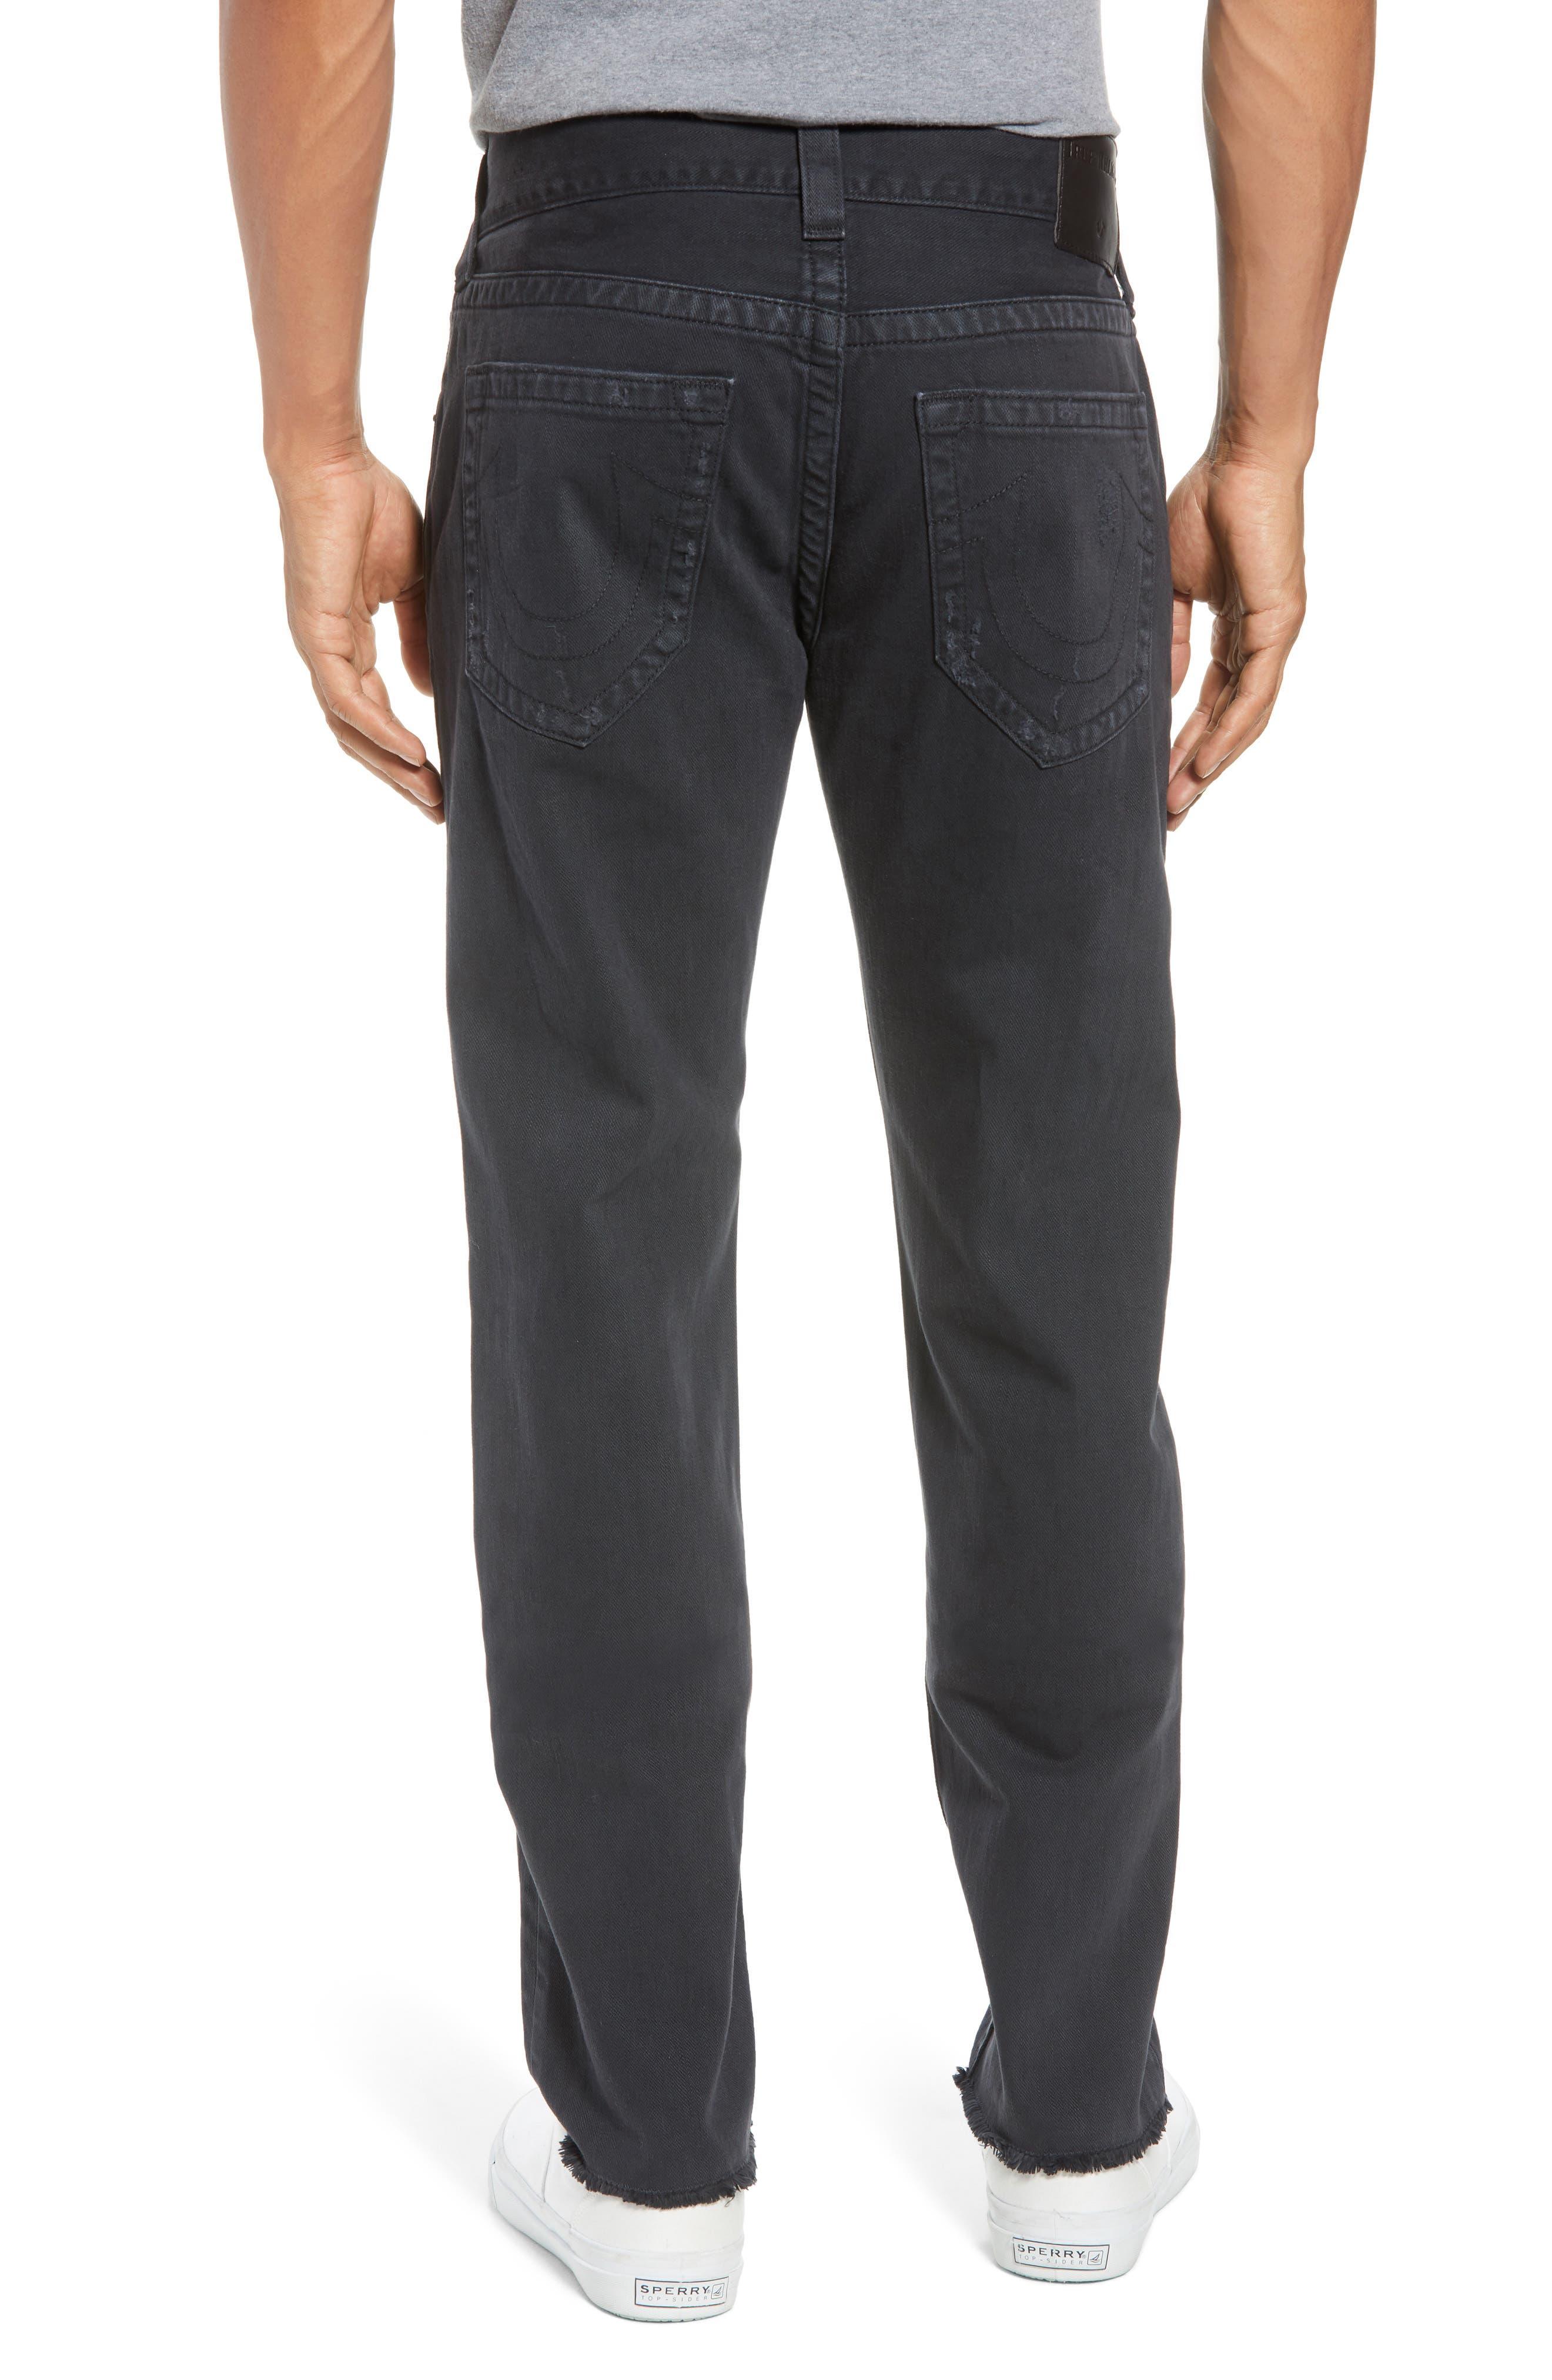 Rocco Skinny Fit Jeans,                             Alternate thumbnail 2, color,                             Black Volcanic Ash